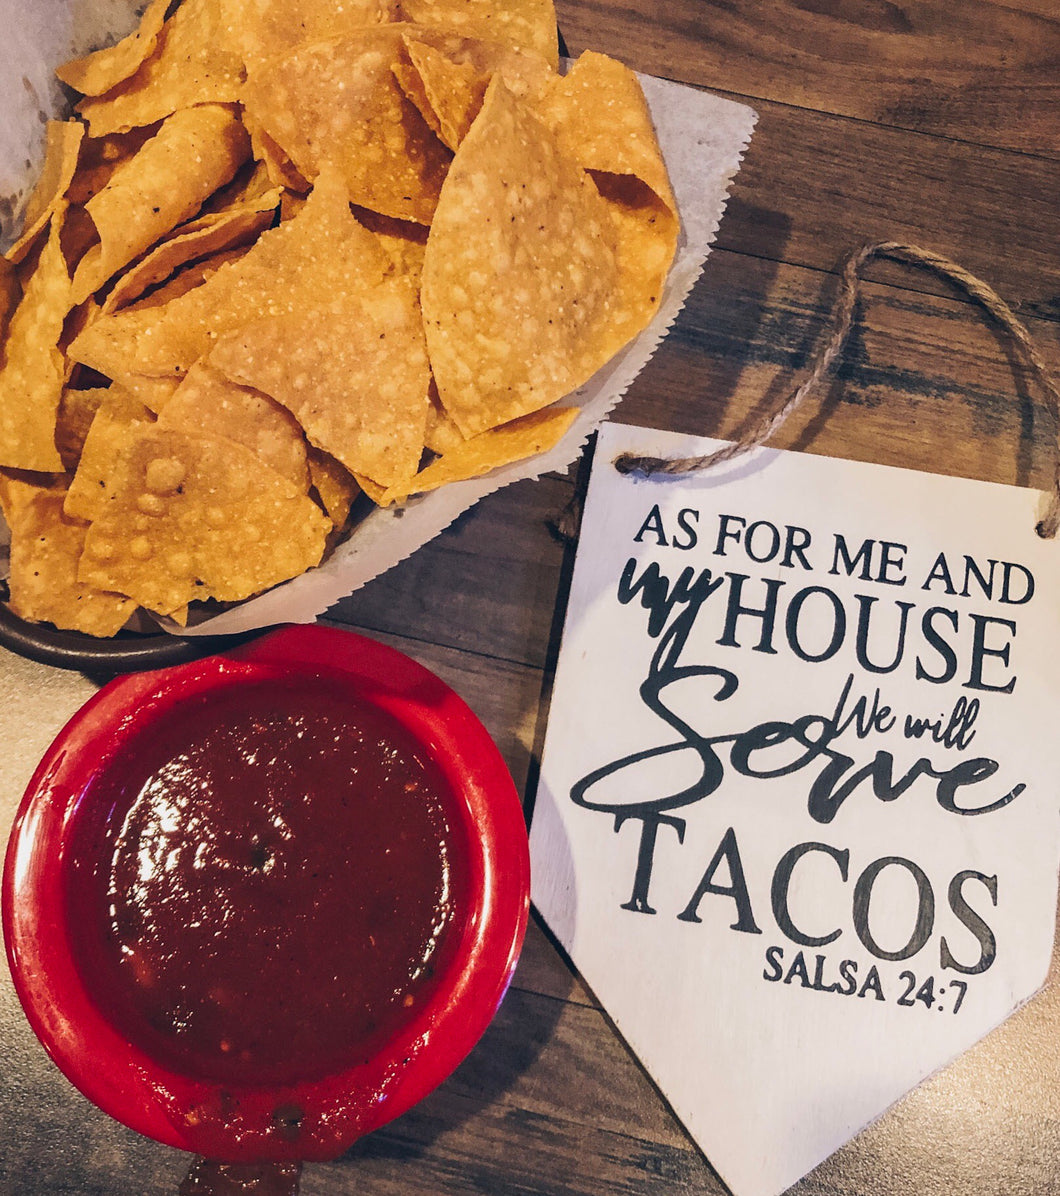 AS FOR ME AND MY HOUSE WE WILL SERVE TACOS -  BANNER